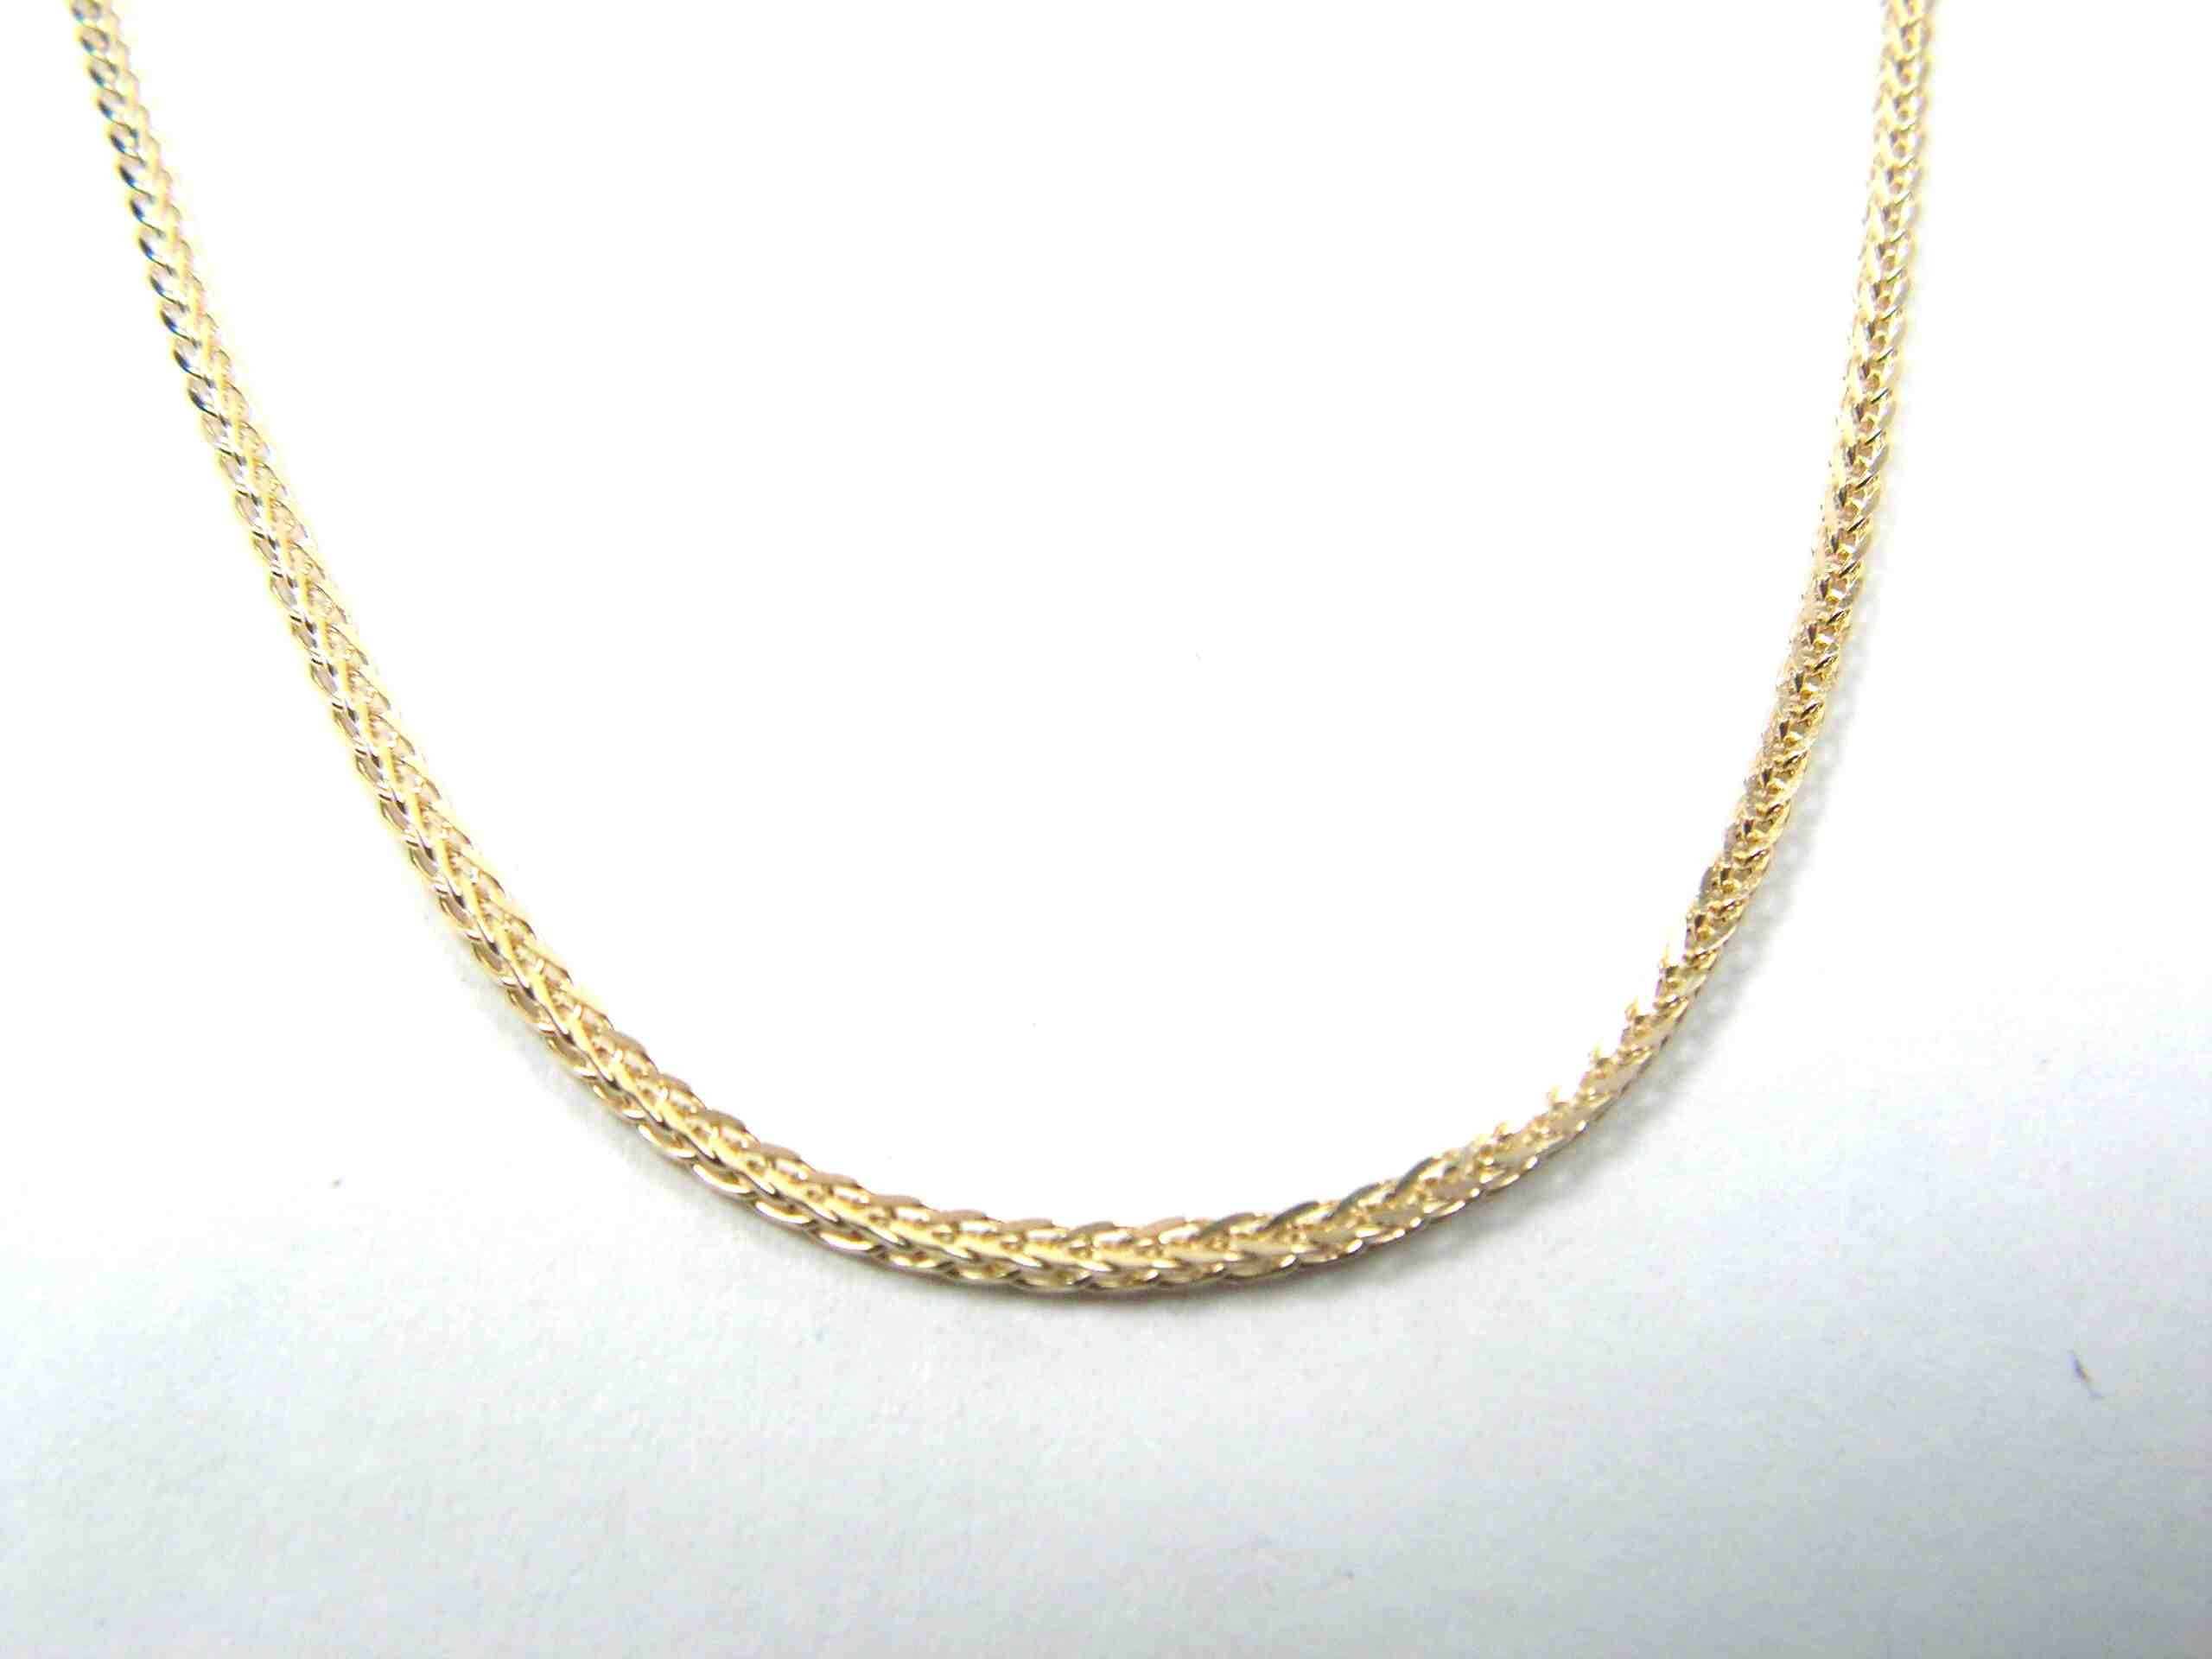 fa179049895d 14k gold chain gold necklace yellow gold necklace spiga